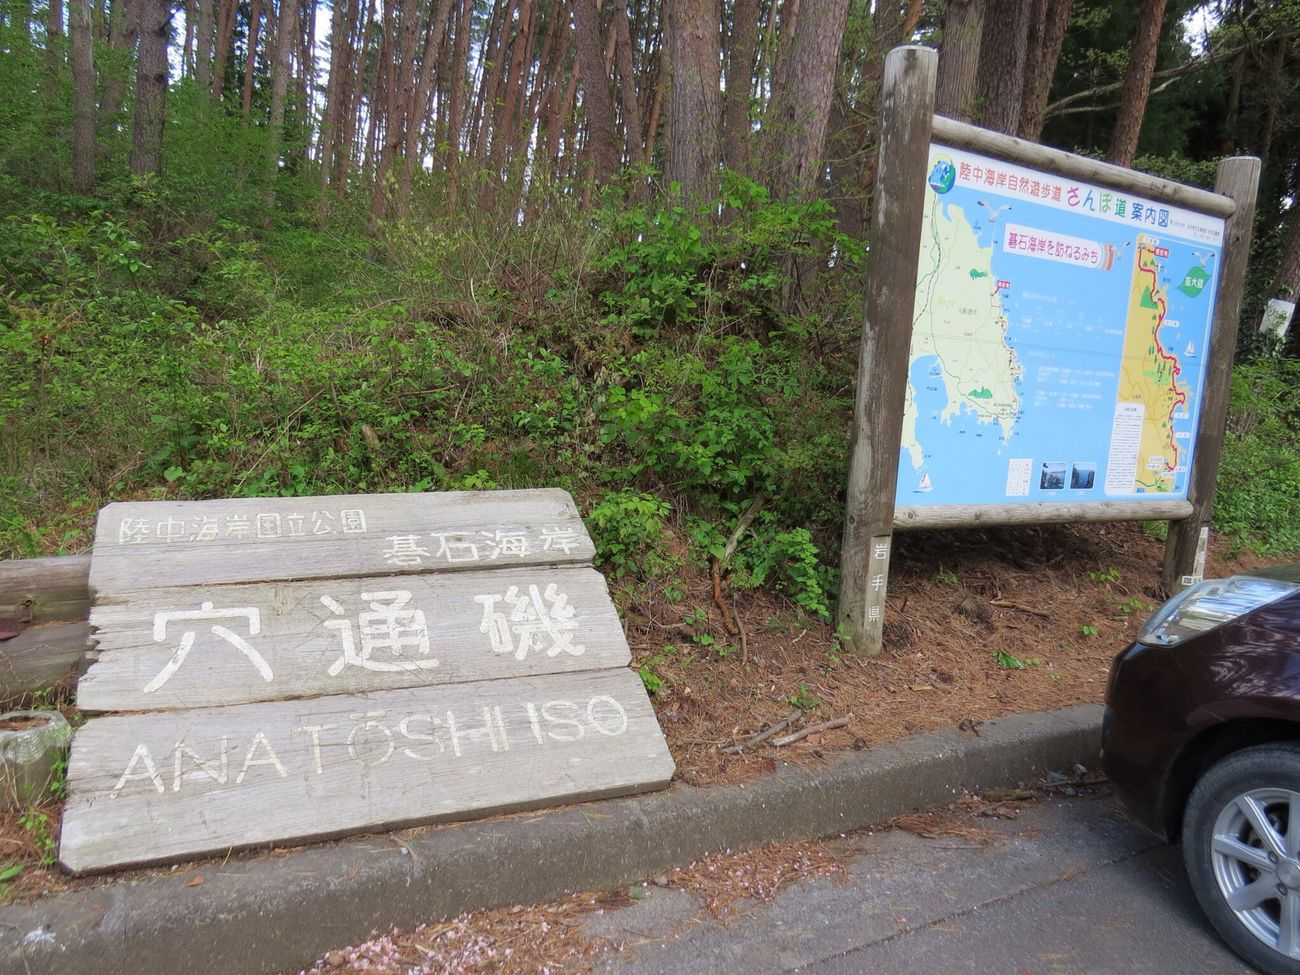 Travel Photography Streetphotography Japan Iwate 大船渡 Travel Destinations Oofunato Information Sign Guidance Sign Board 碁石海岸 穴通磯入口